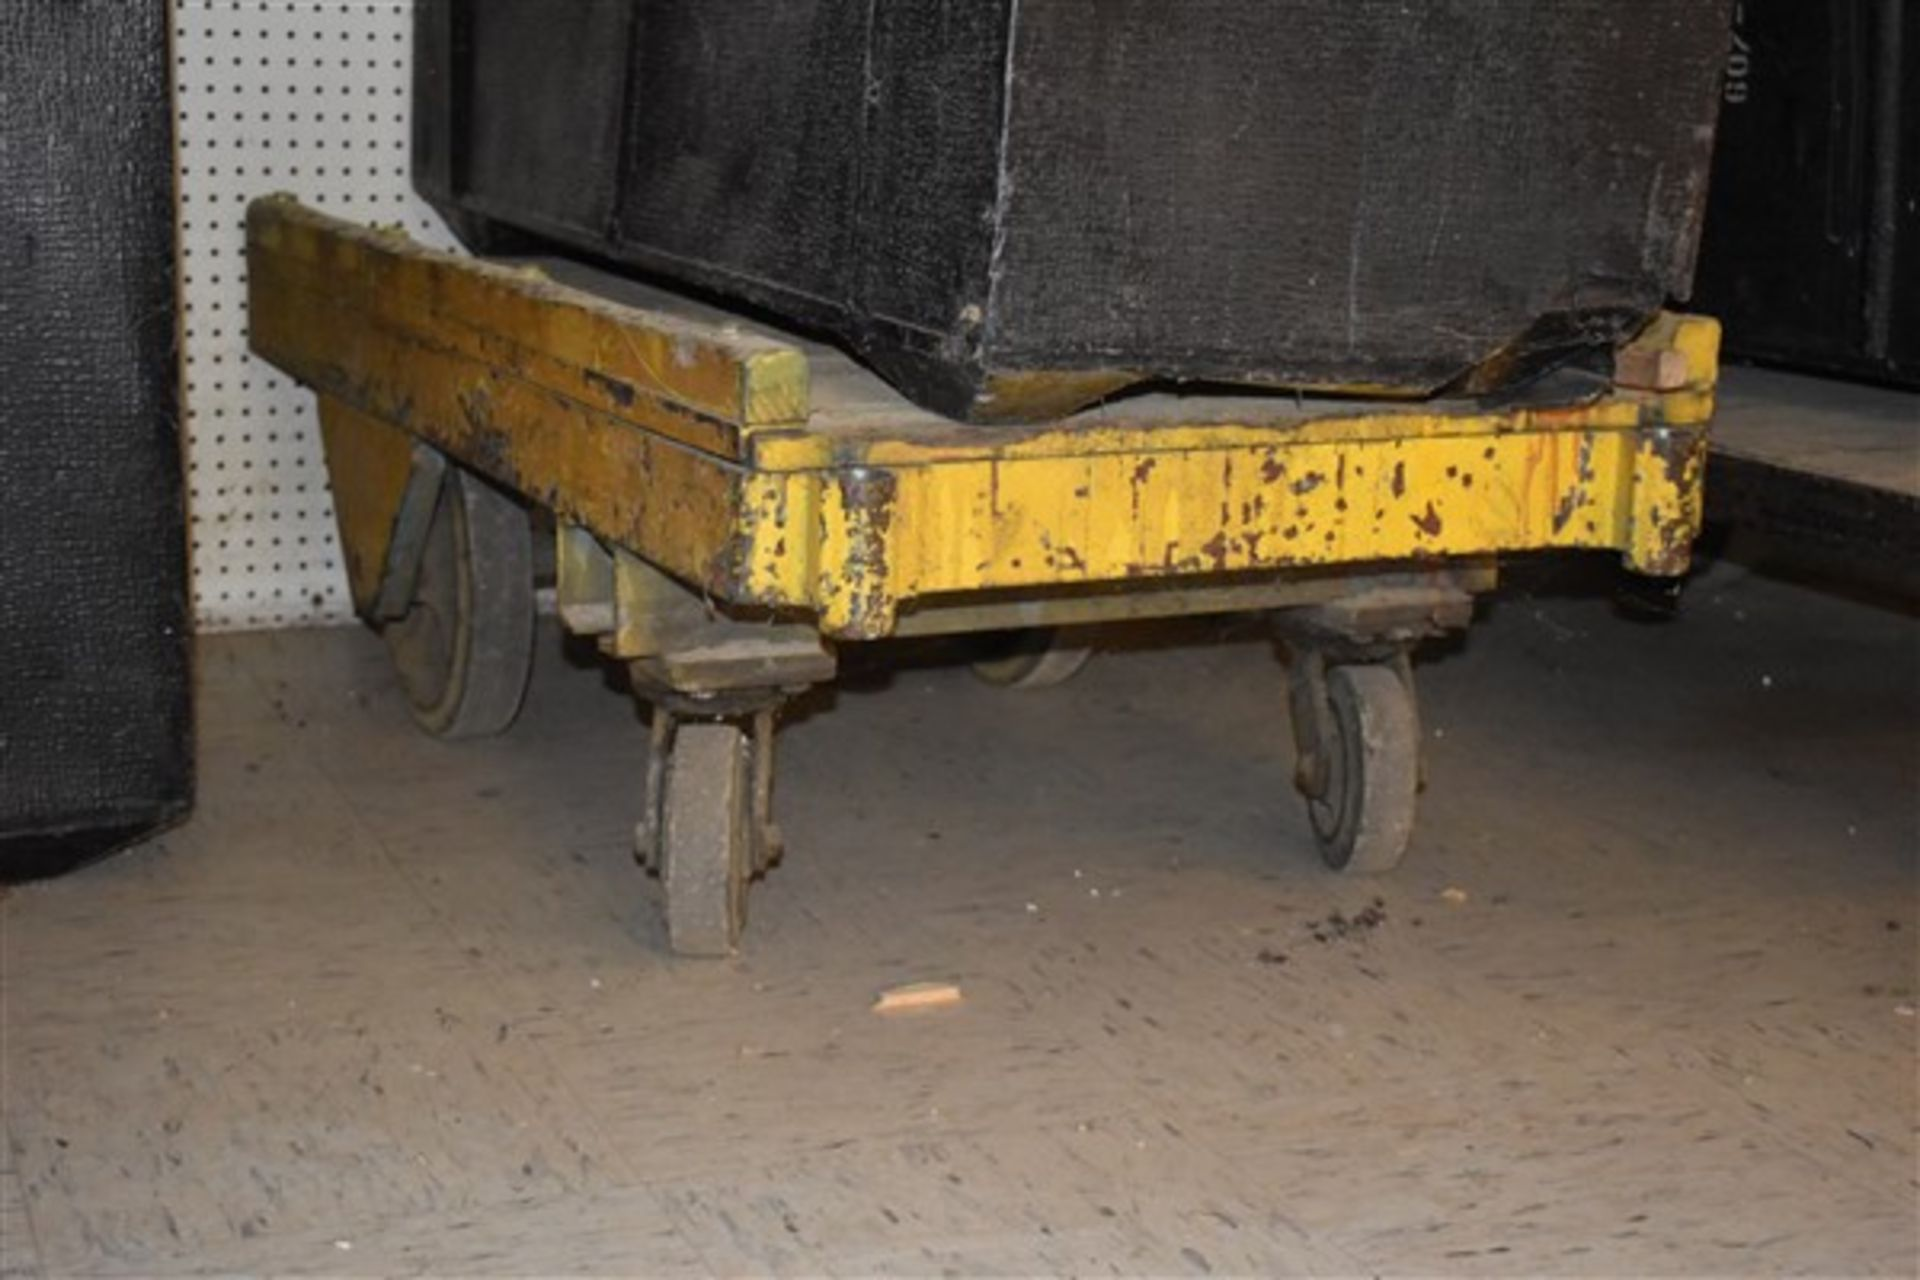 Lot 346 - 3 Shipping Containers & 2 Industrial Carts